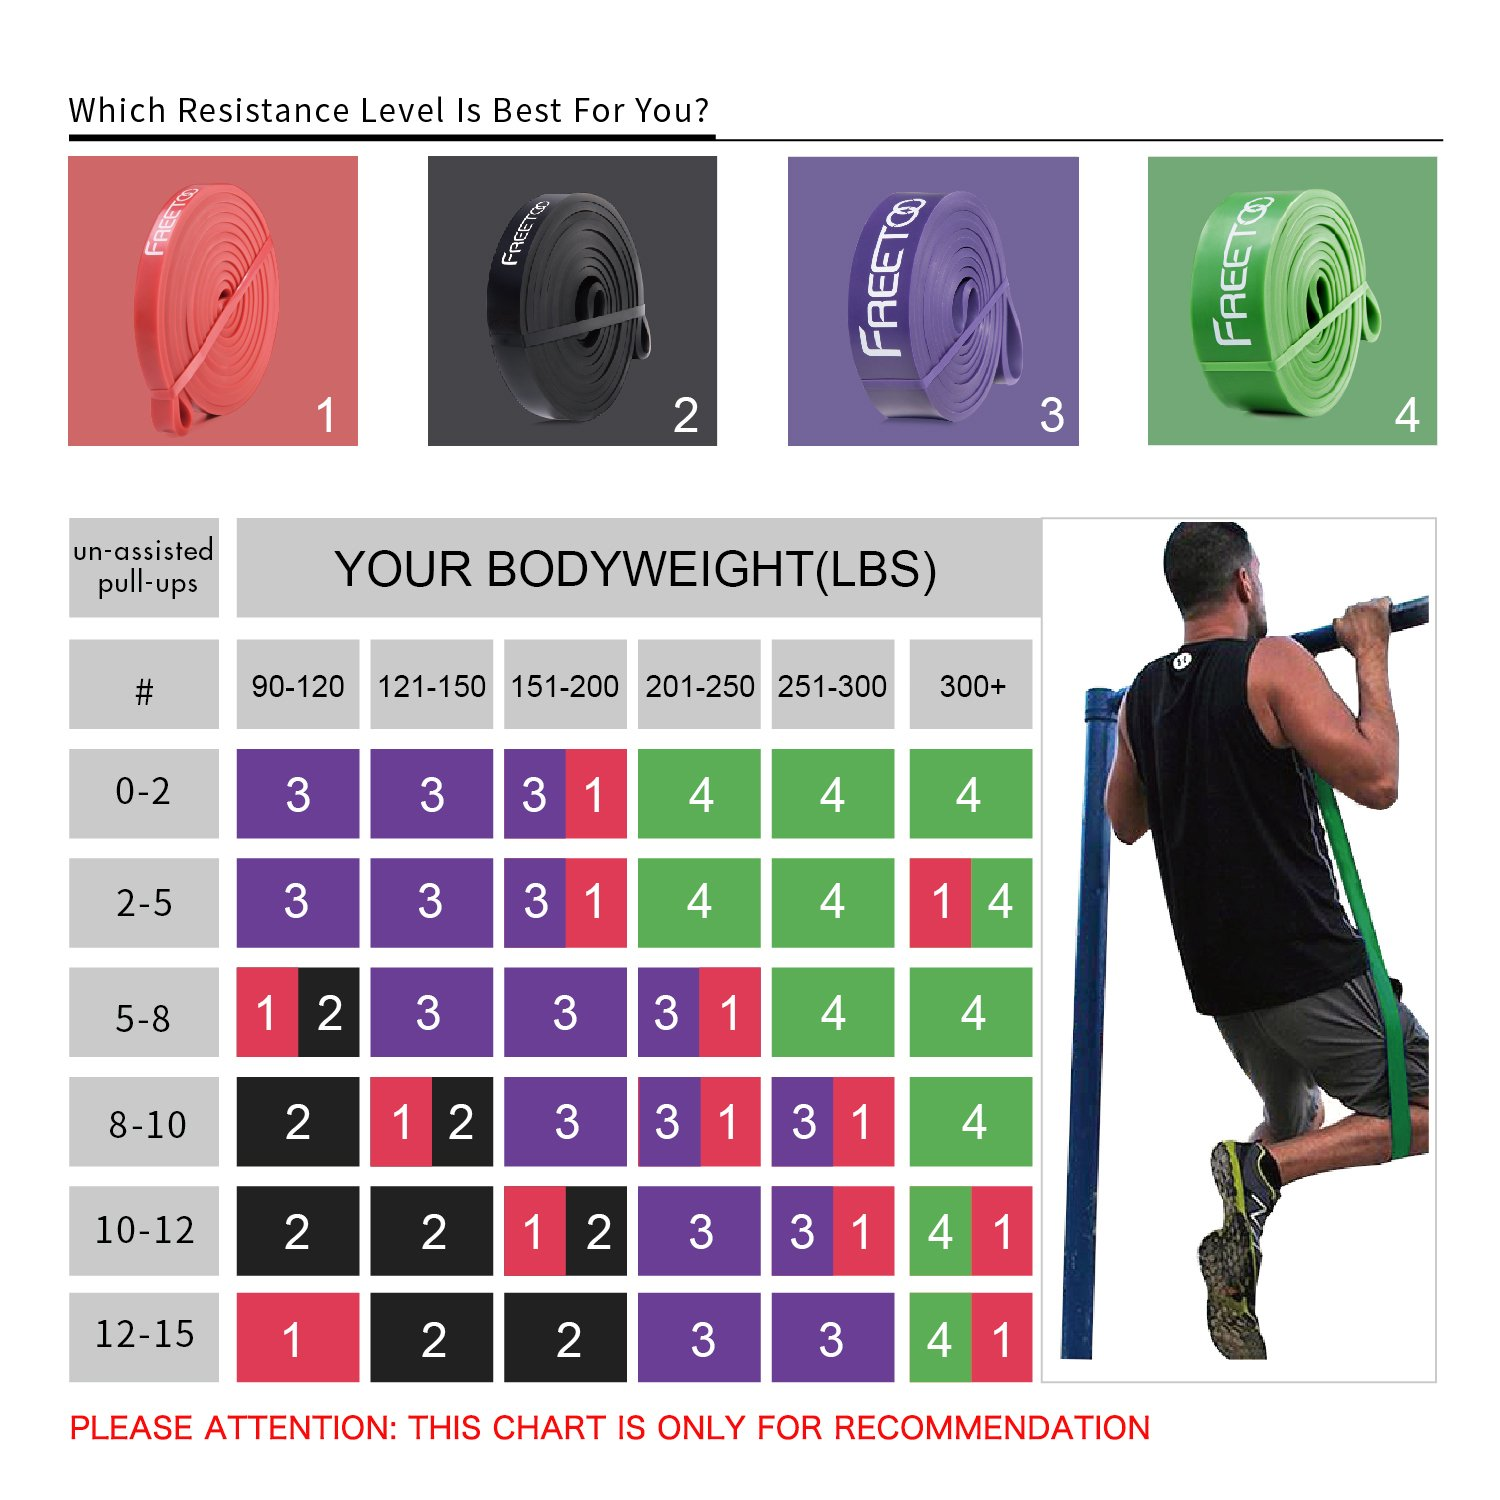 FREETOO Resistance Bands Pull Up Assist Bands Workout Exercise Bands Stretch Bands 100/% Natural Latex Best for Body Stretching,Pilates,Resistance Training,Cross Fitness,Yoga and Home Fitness